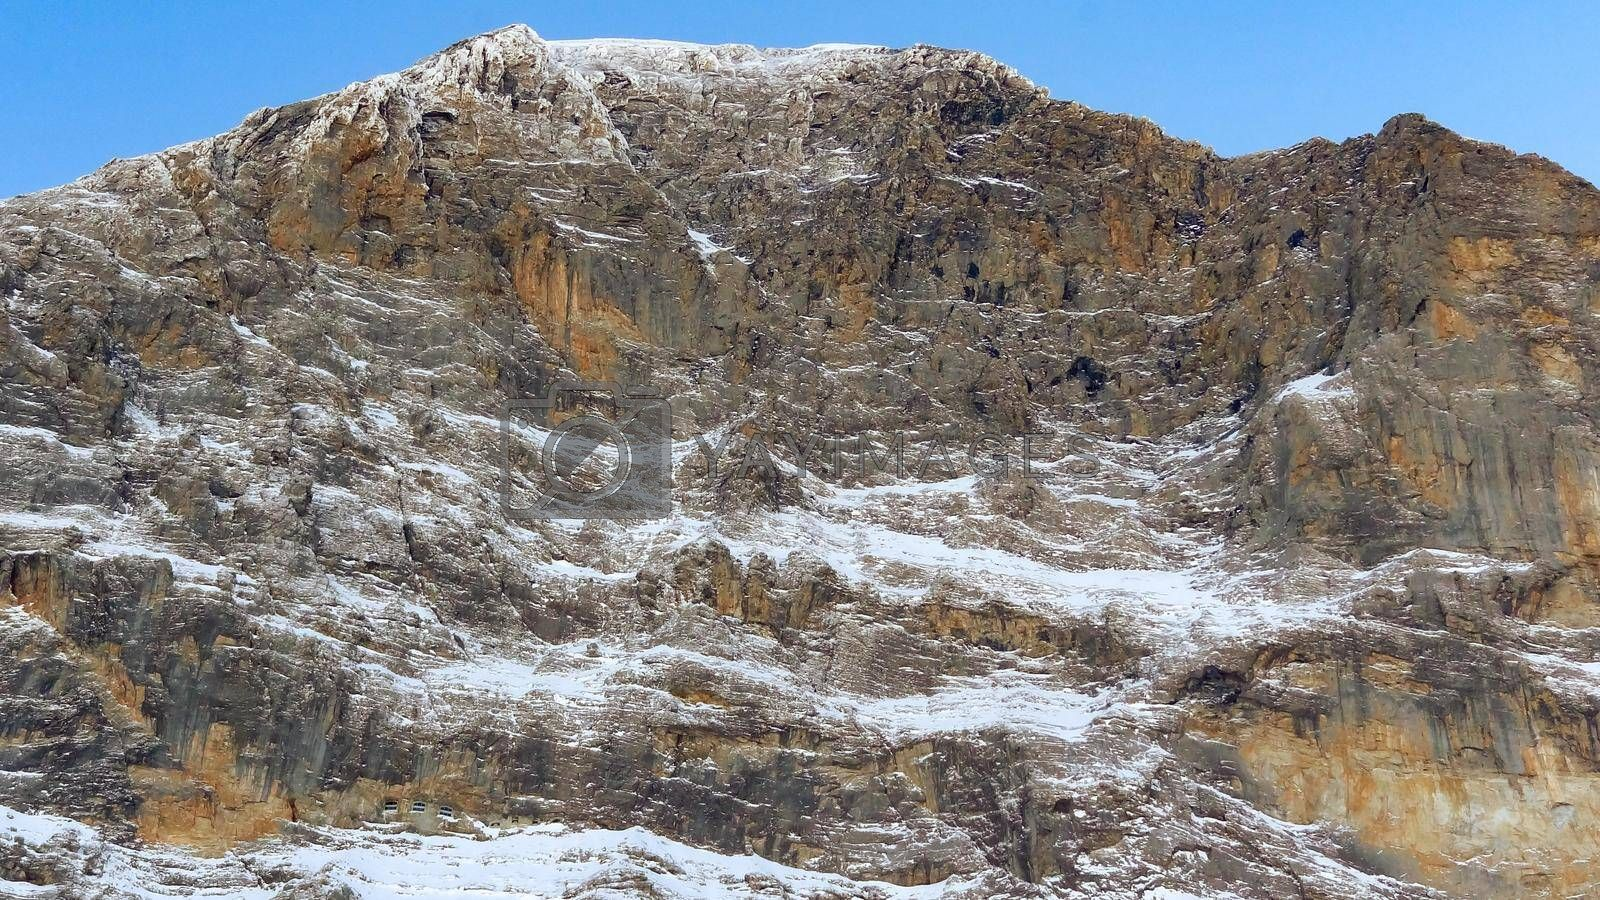 The North wall of Eiger peak in winter with a clear blue sky. Grindelwald Switzerland